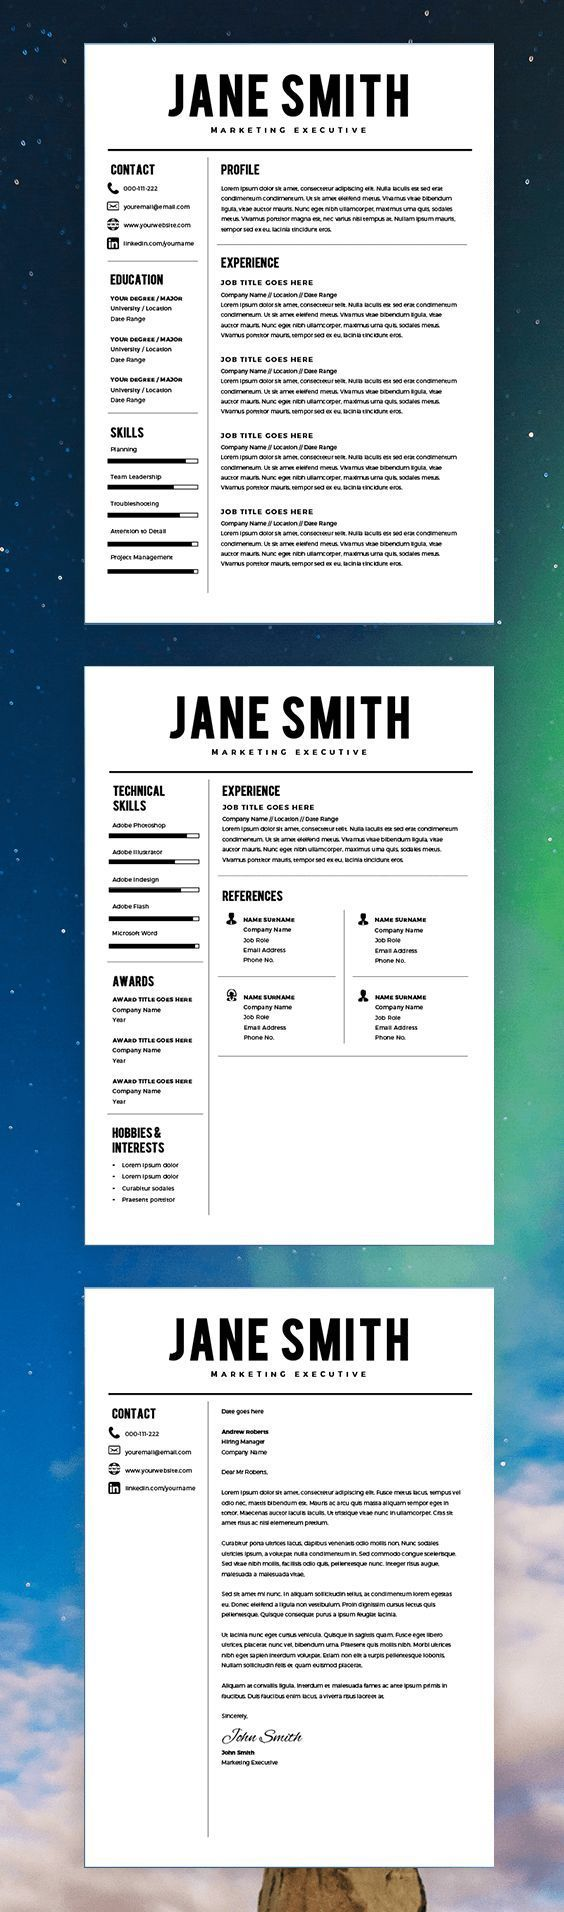 Best resume template cv template cover letter ms word on mac best resume template cv template cover letter ms word on mac pc professional design best resume templates instant download yelopaper